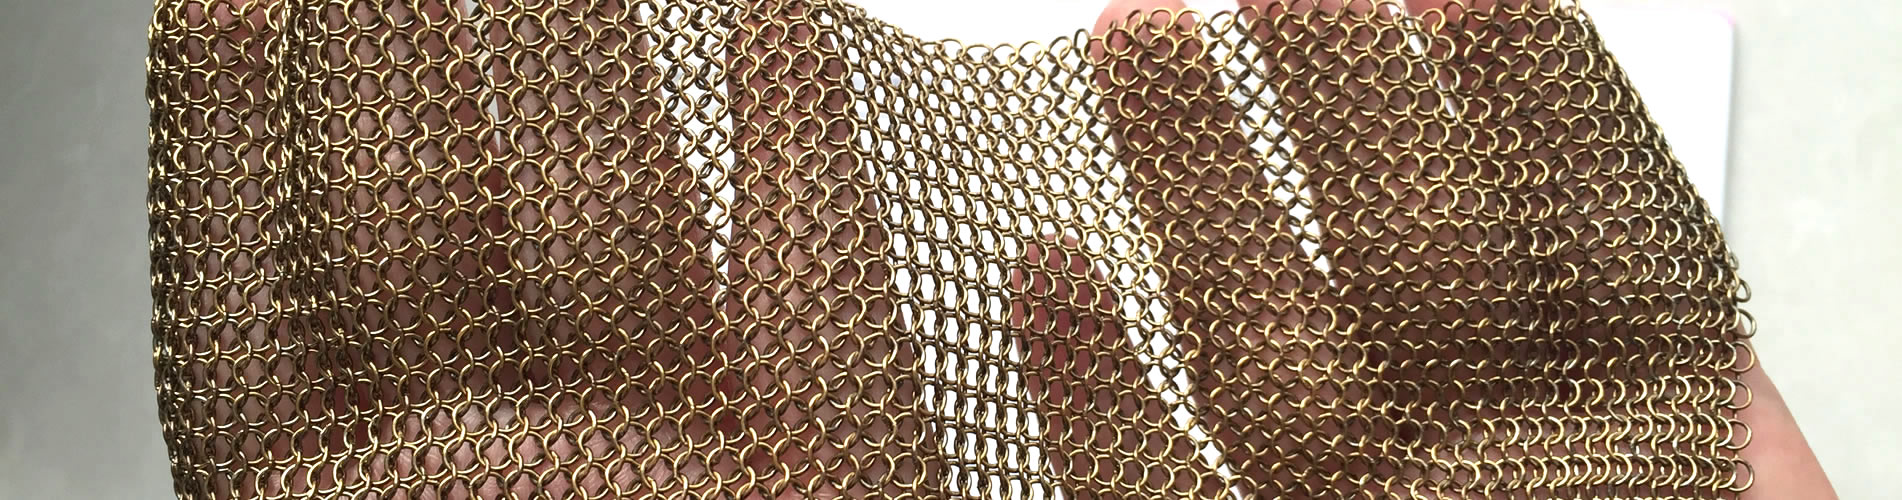 A piece of copper plating chainmail is spread out on two hands.